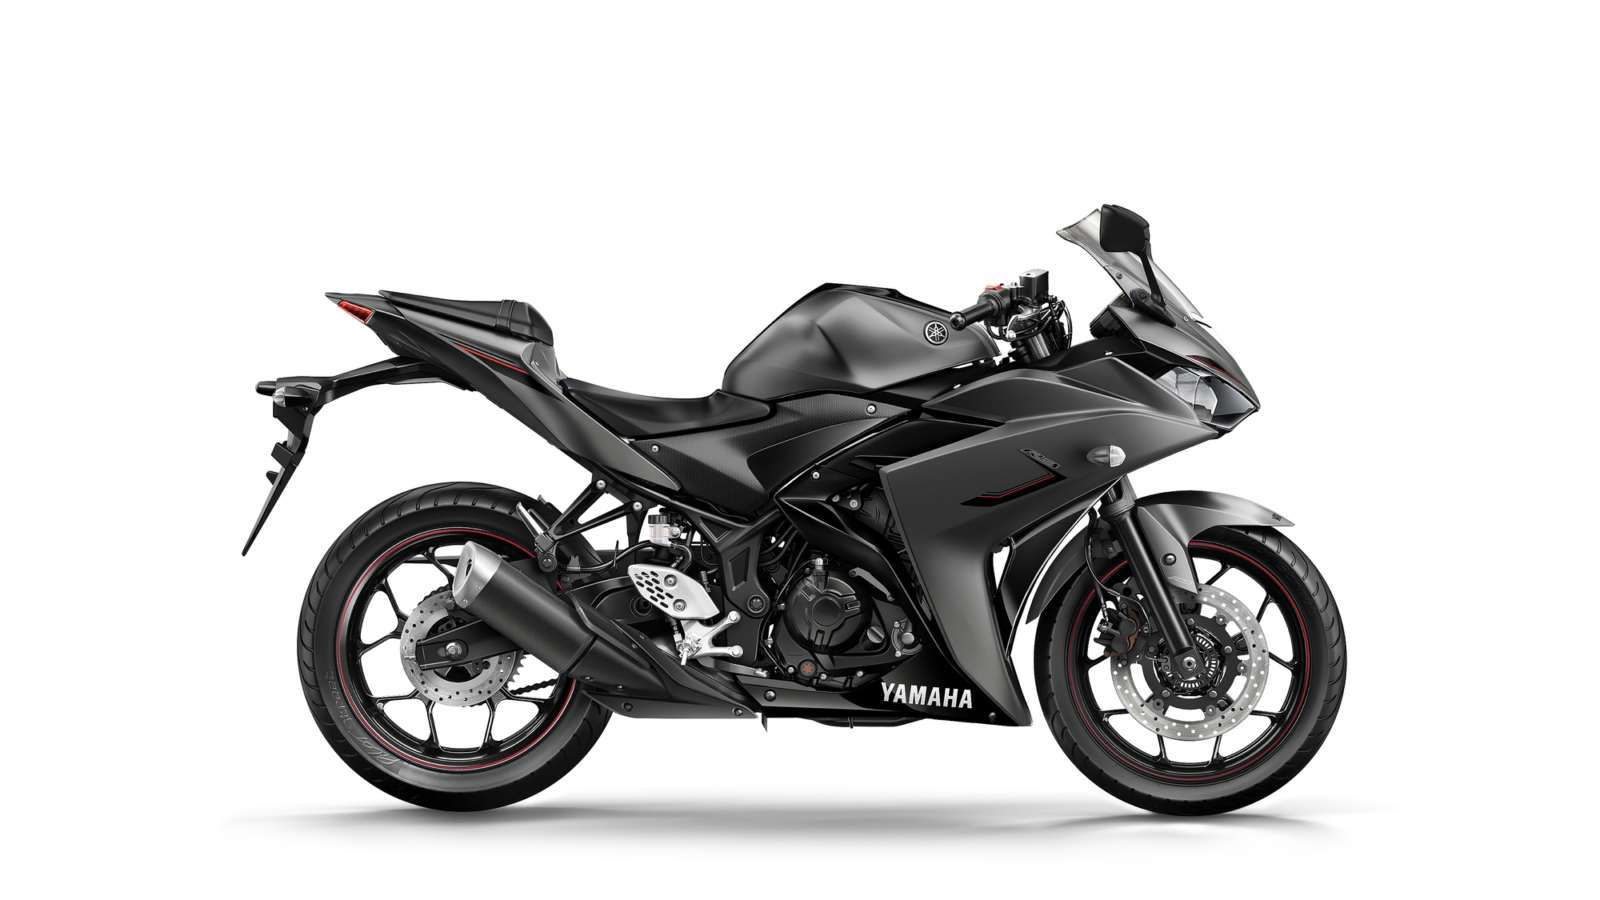 yamaha r3 gets new colour schemes and graphics for 2016 motoroids. Black Bedroom Furniture Sets. Home Design Ideas